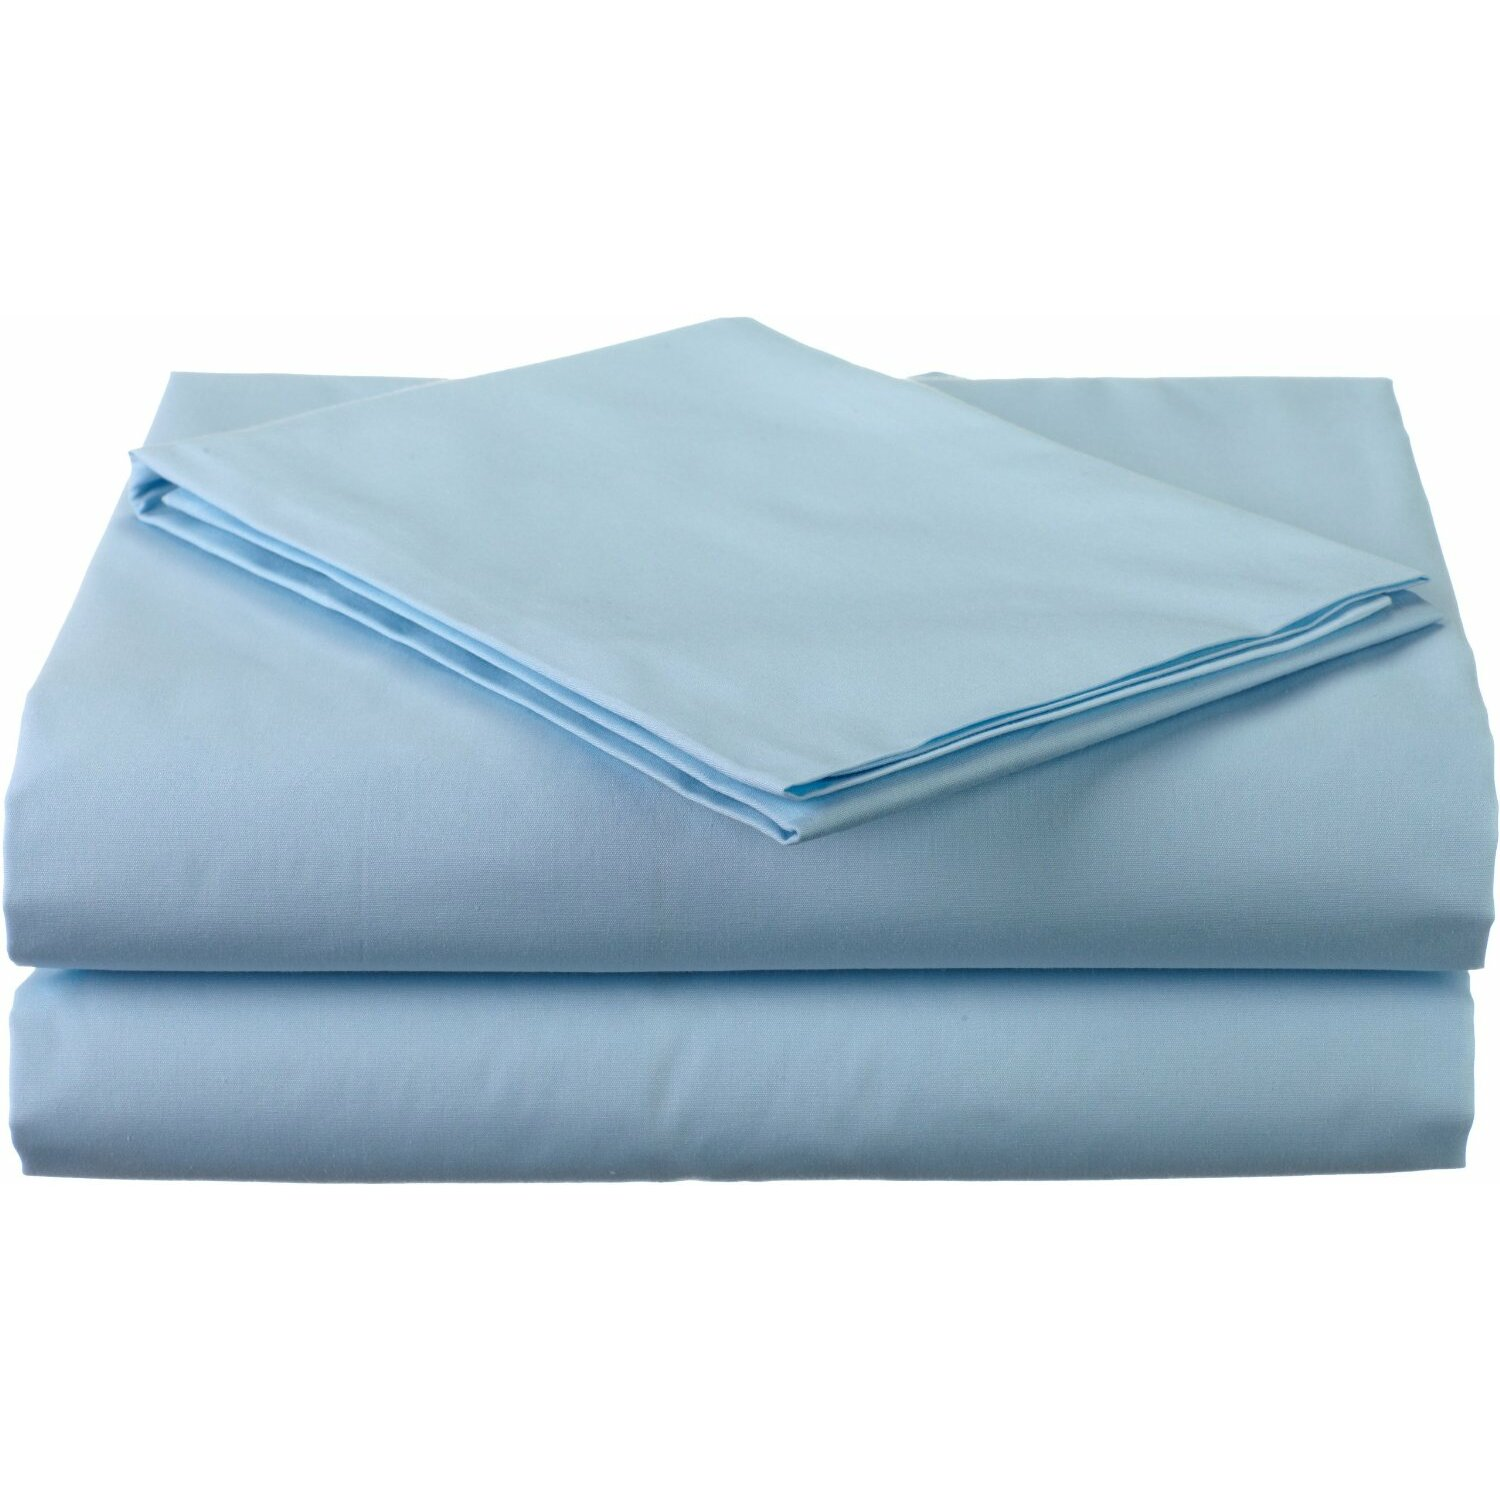 Percale 3 Piece Toddler Sheet Set